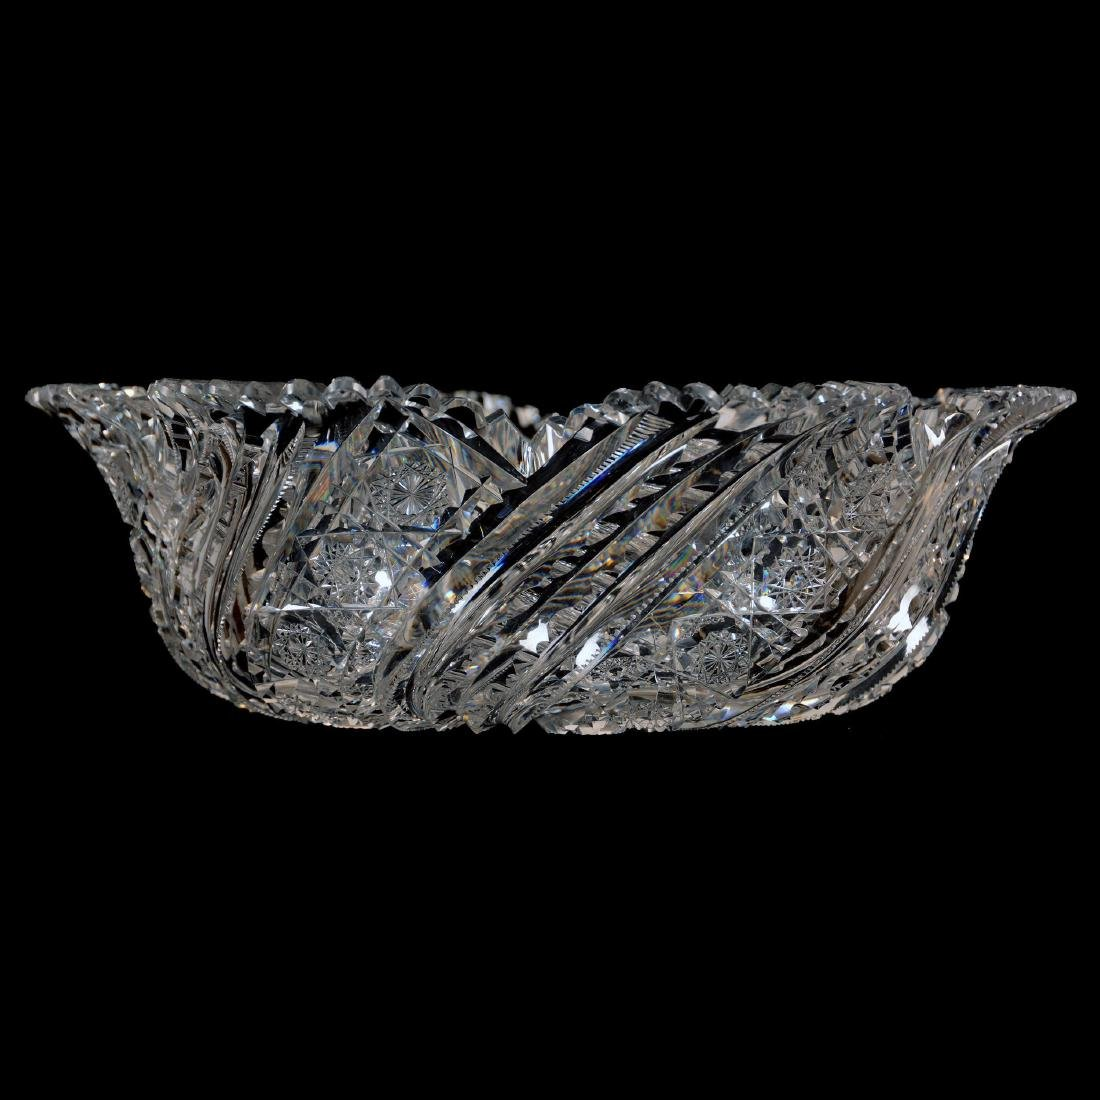 """Blown Mold Bowl-4.25"""" X 13""""- Peerless Pattern by Straus - 2"""